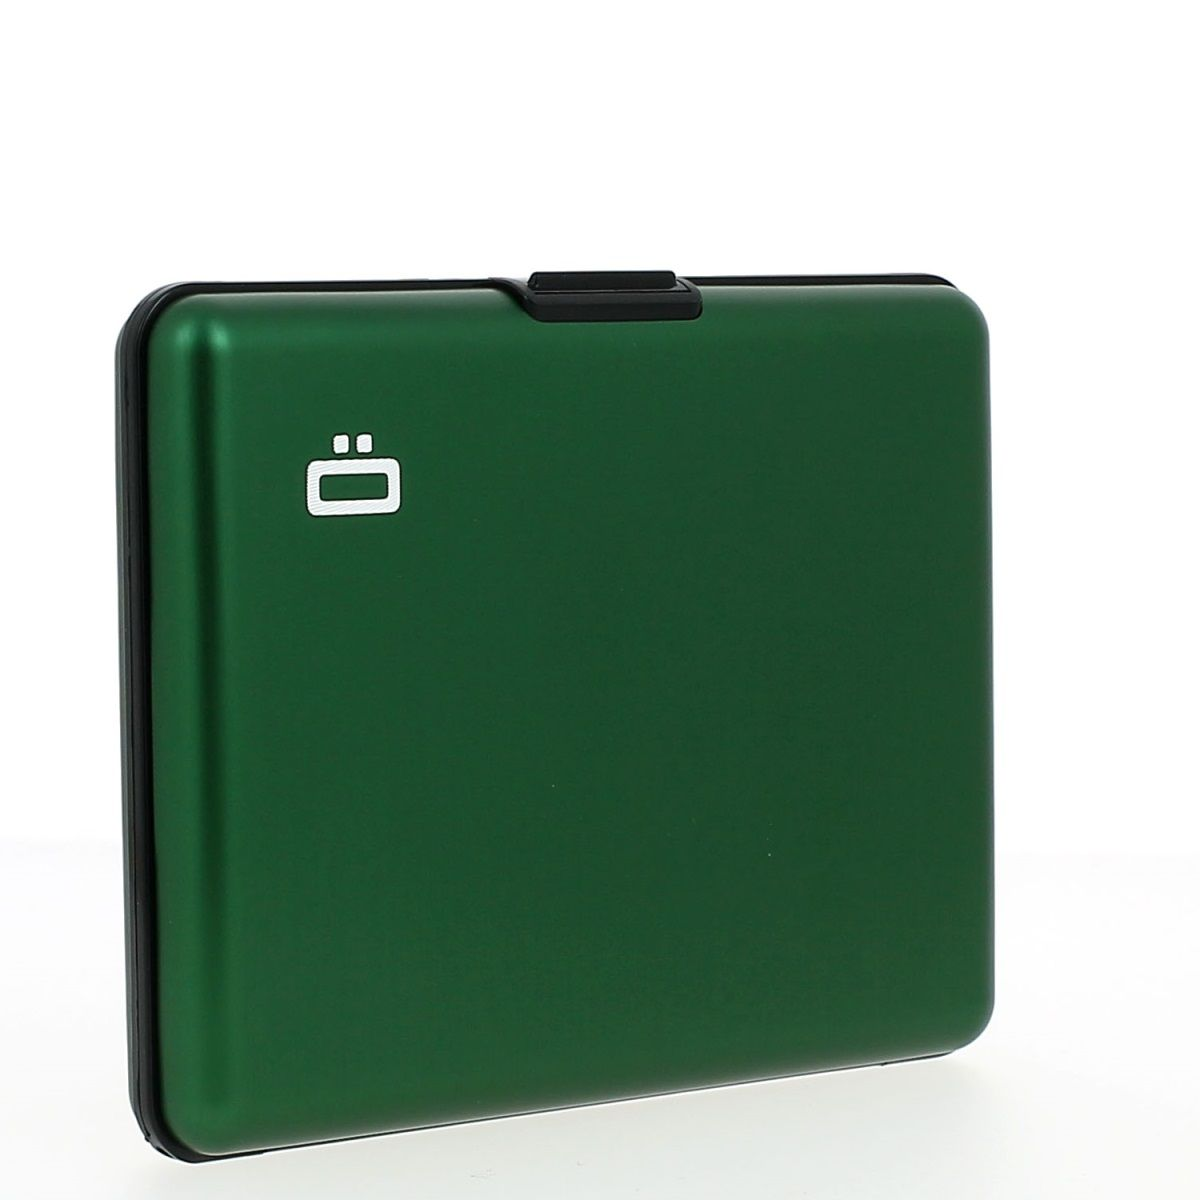 OGON Aluminum Wallet Big - Green